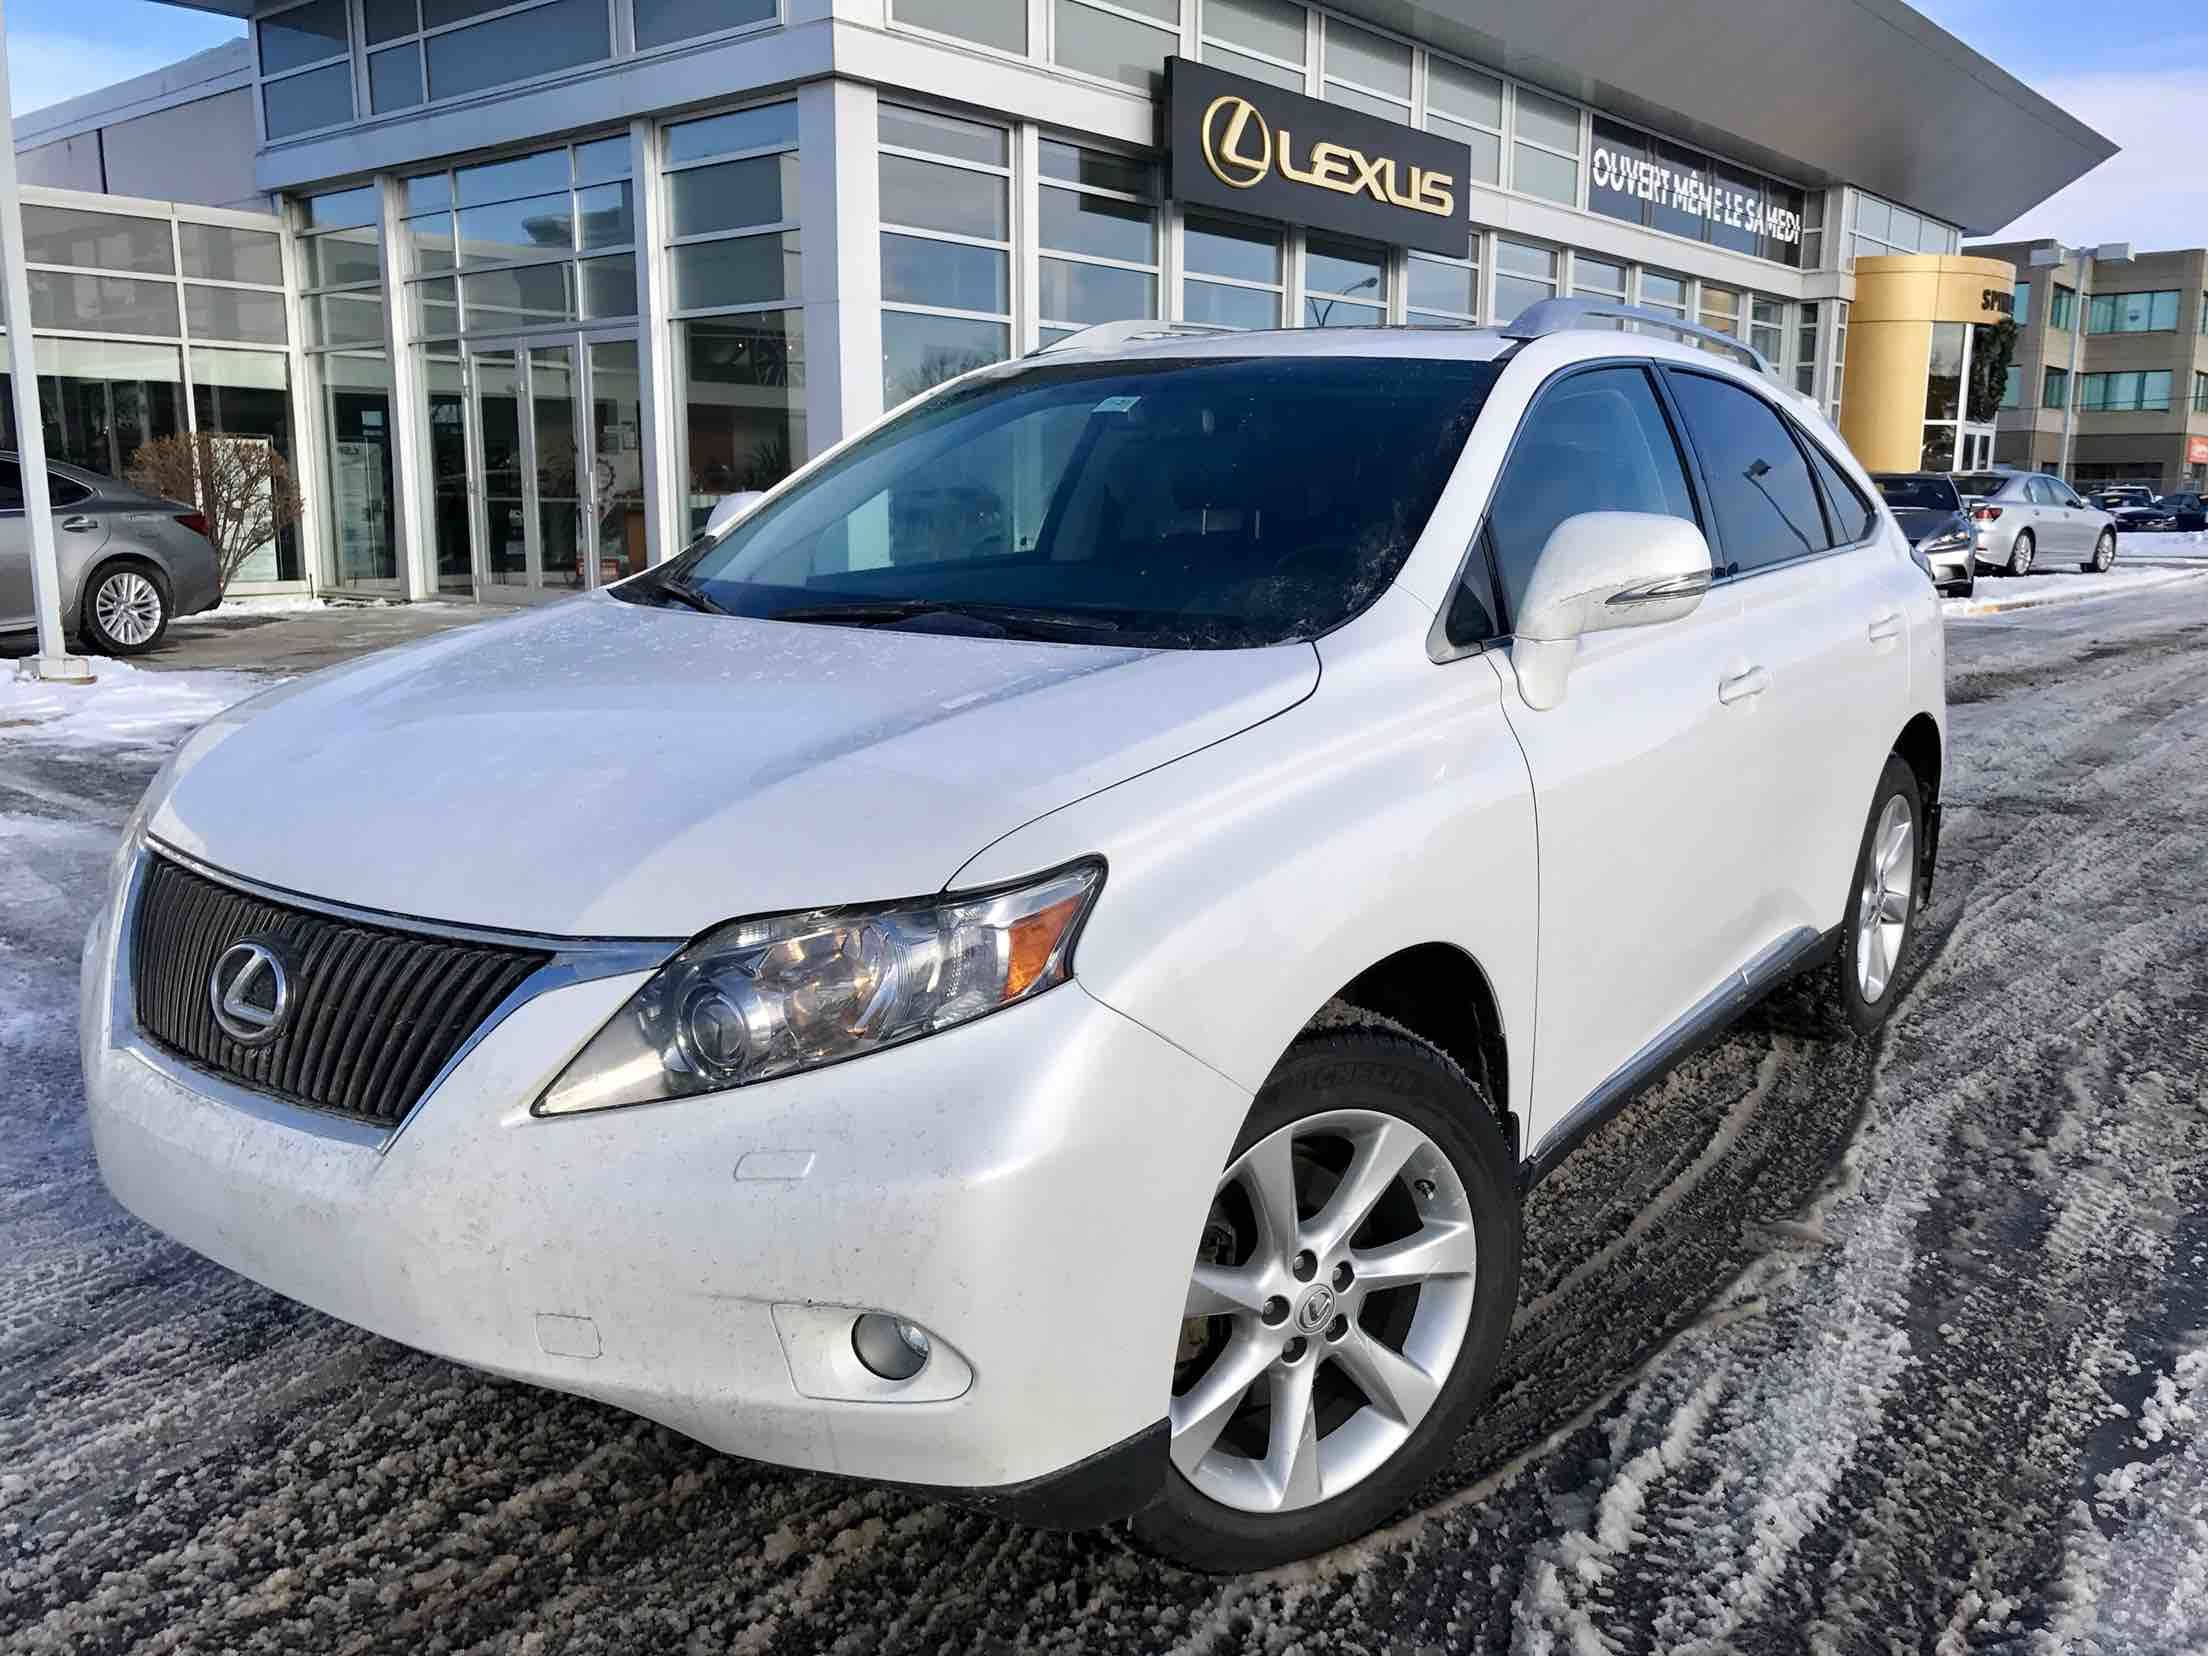 common extended warranty research repair cost shareasimage rx suv problems lexus car center